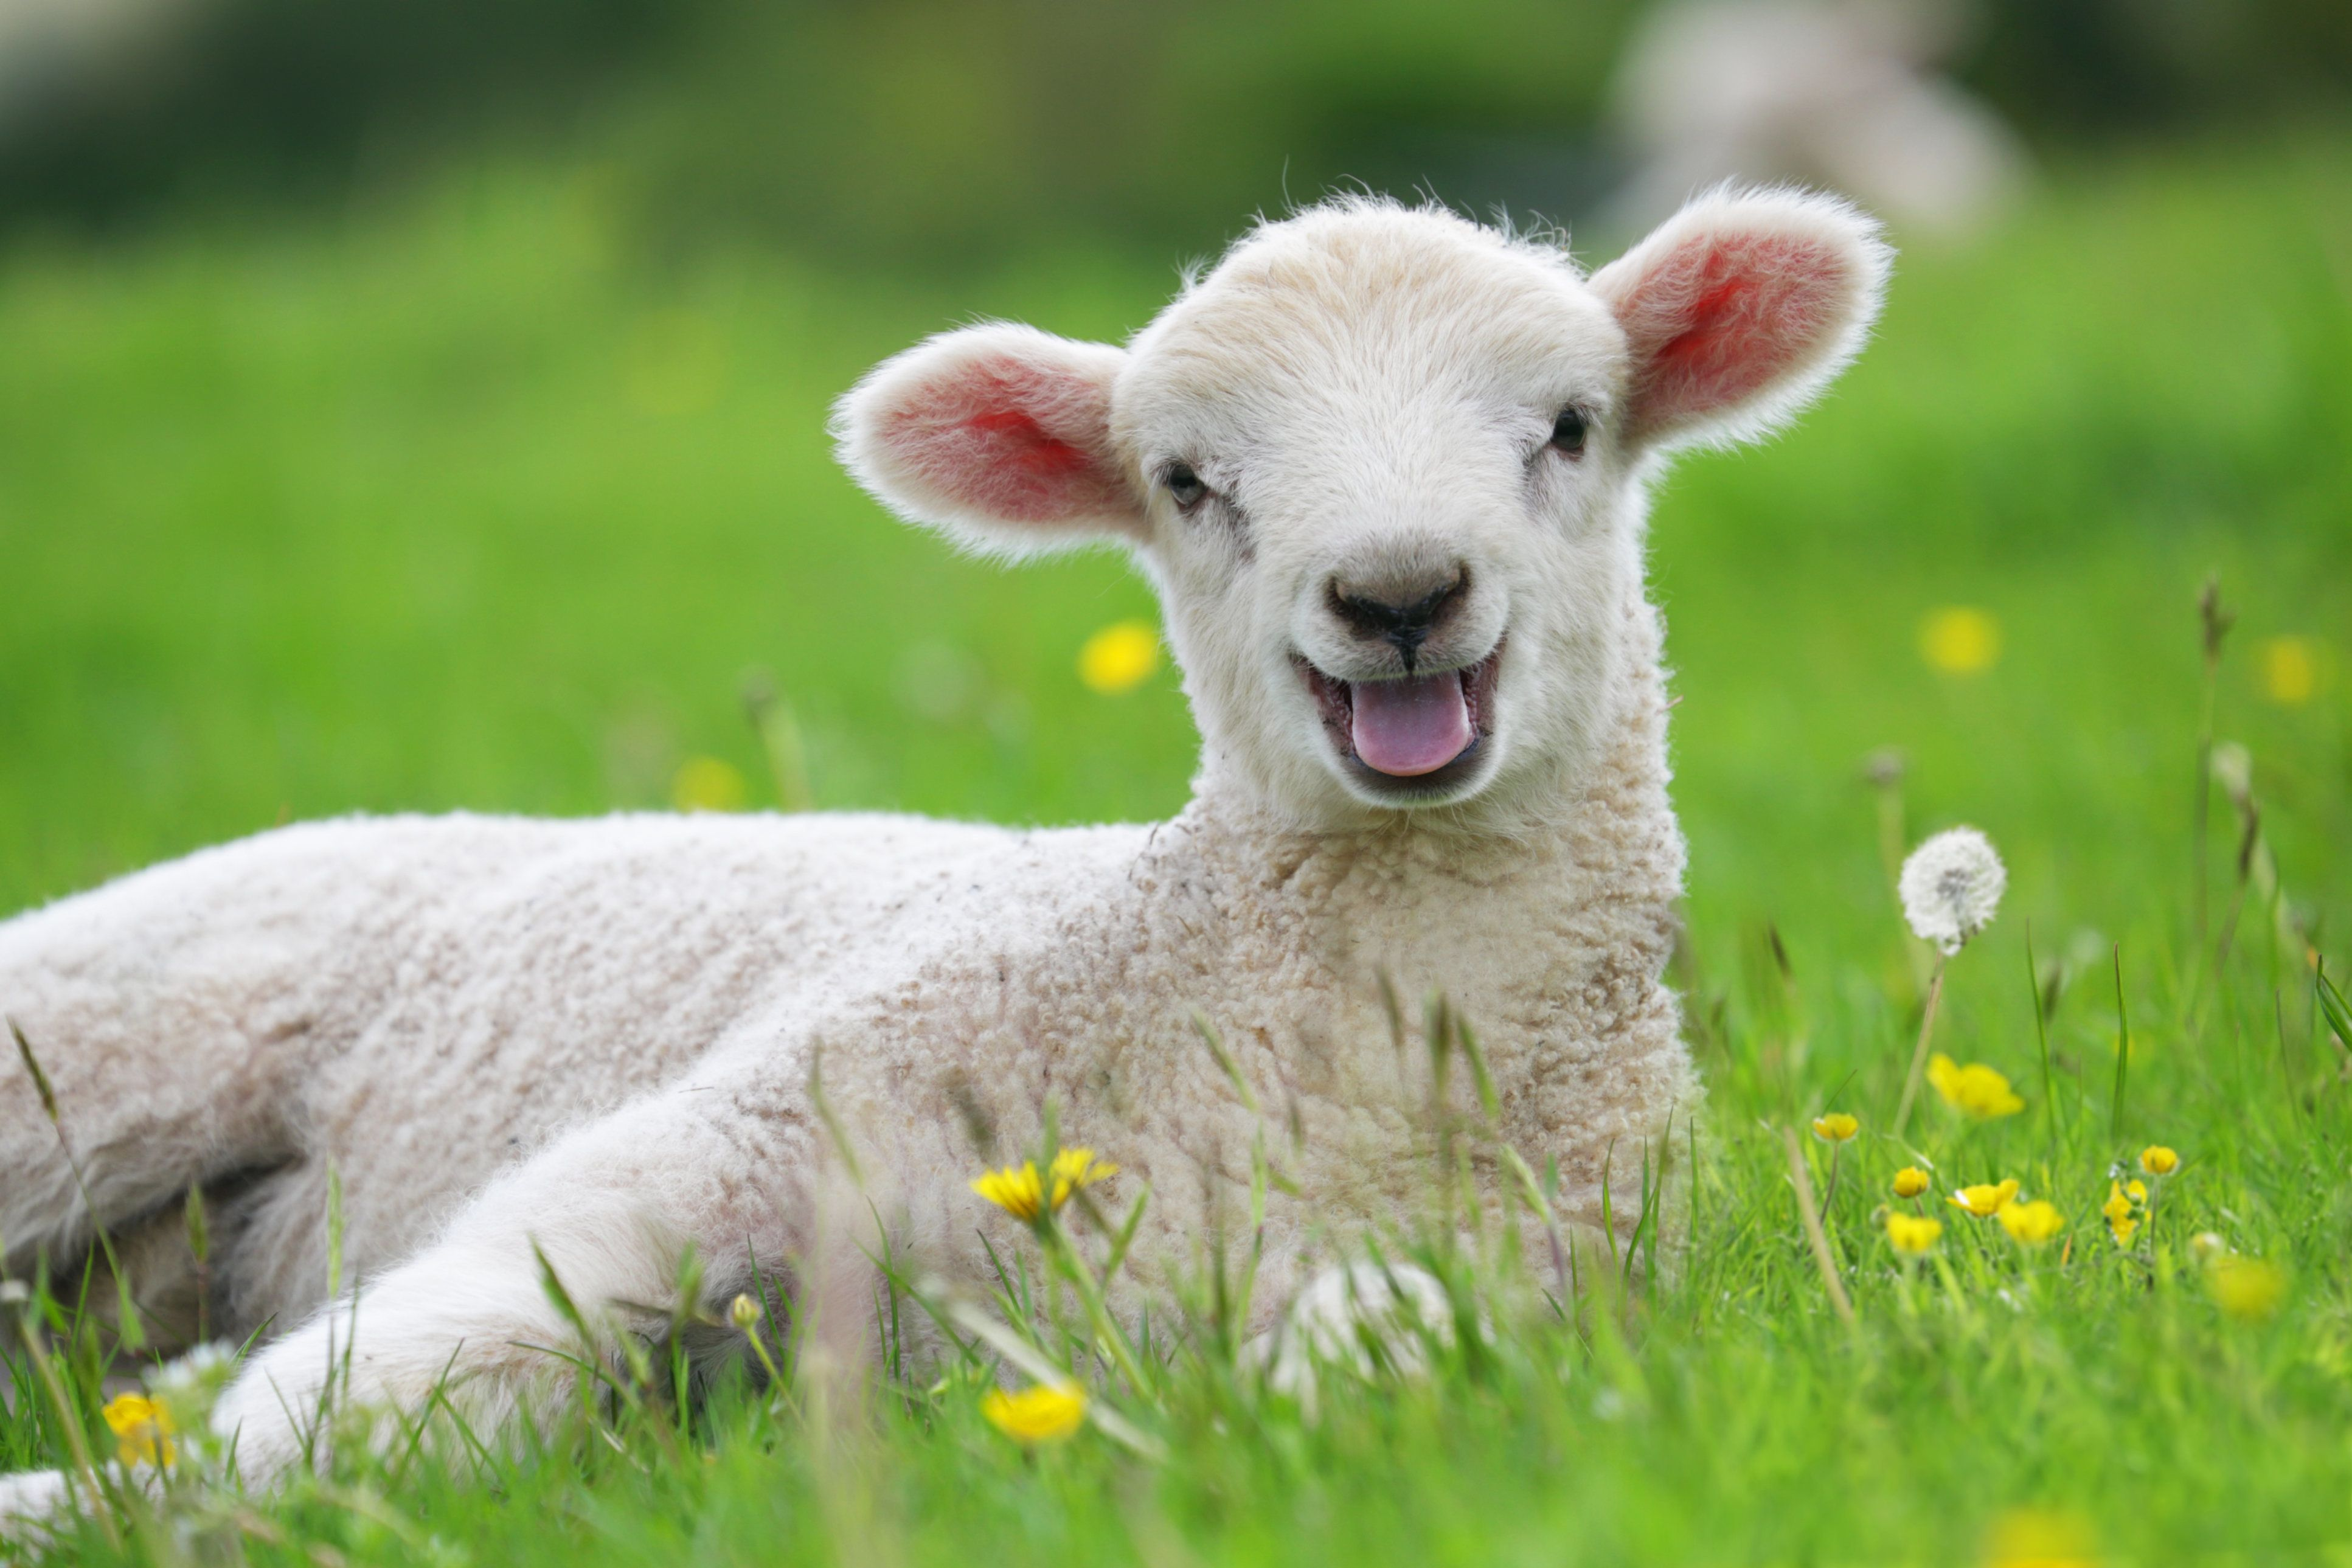 No, Stoned Sheep Aren't Going On Psychotic Rampages Through A Welsh